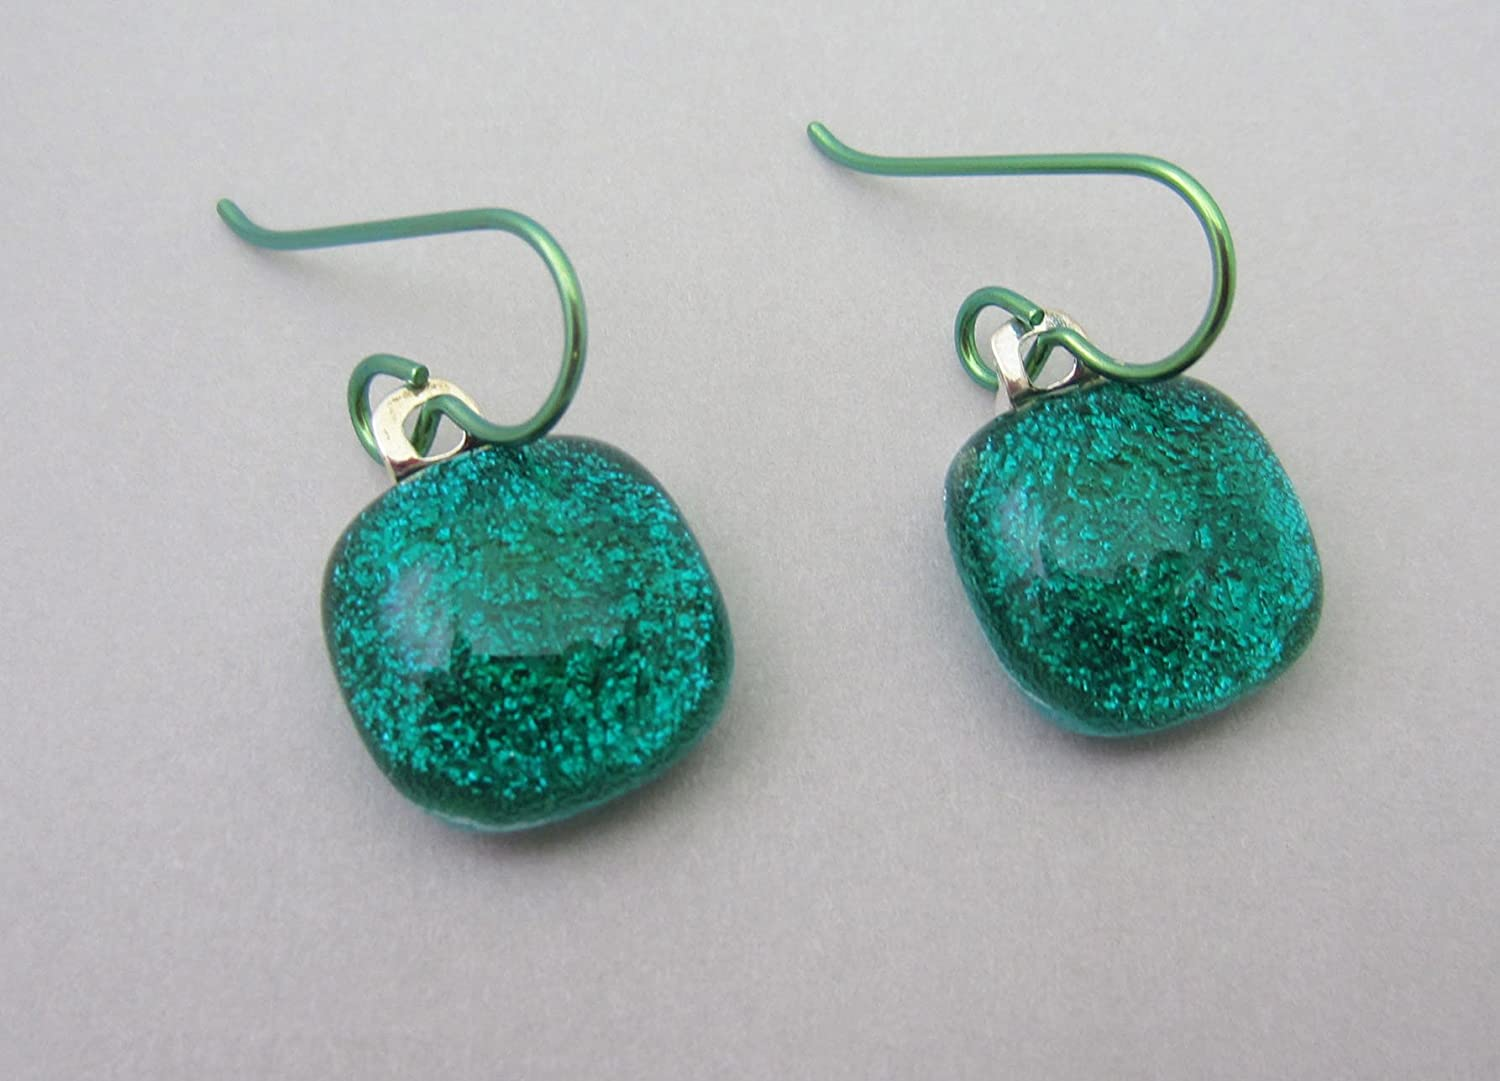 Bright emerald green drop fused dichroic glass earrings. Hypo-allergenic niobium ear wires